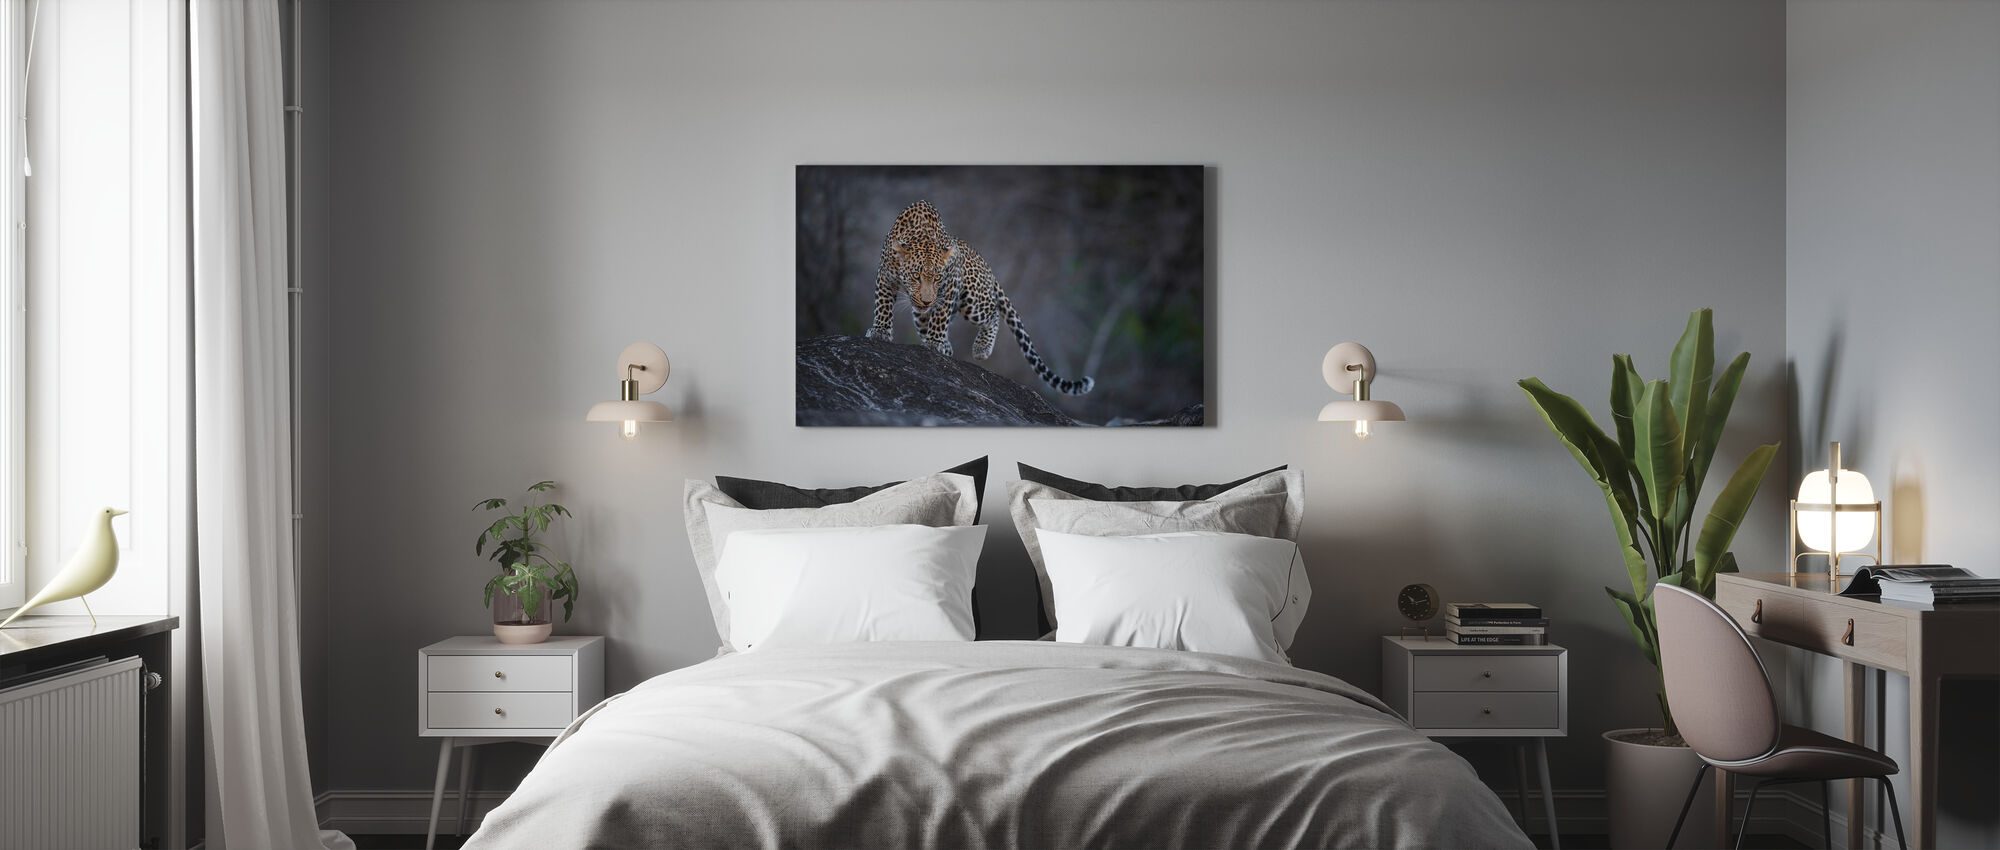 Leopard on a Rock - Canvas print - Bedroom